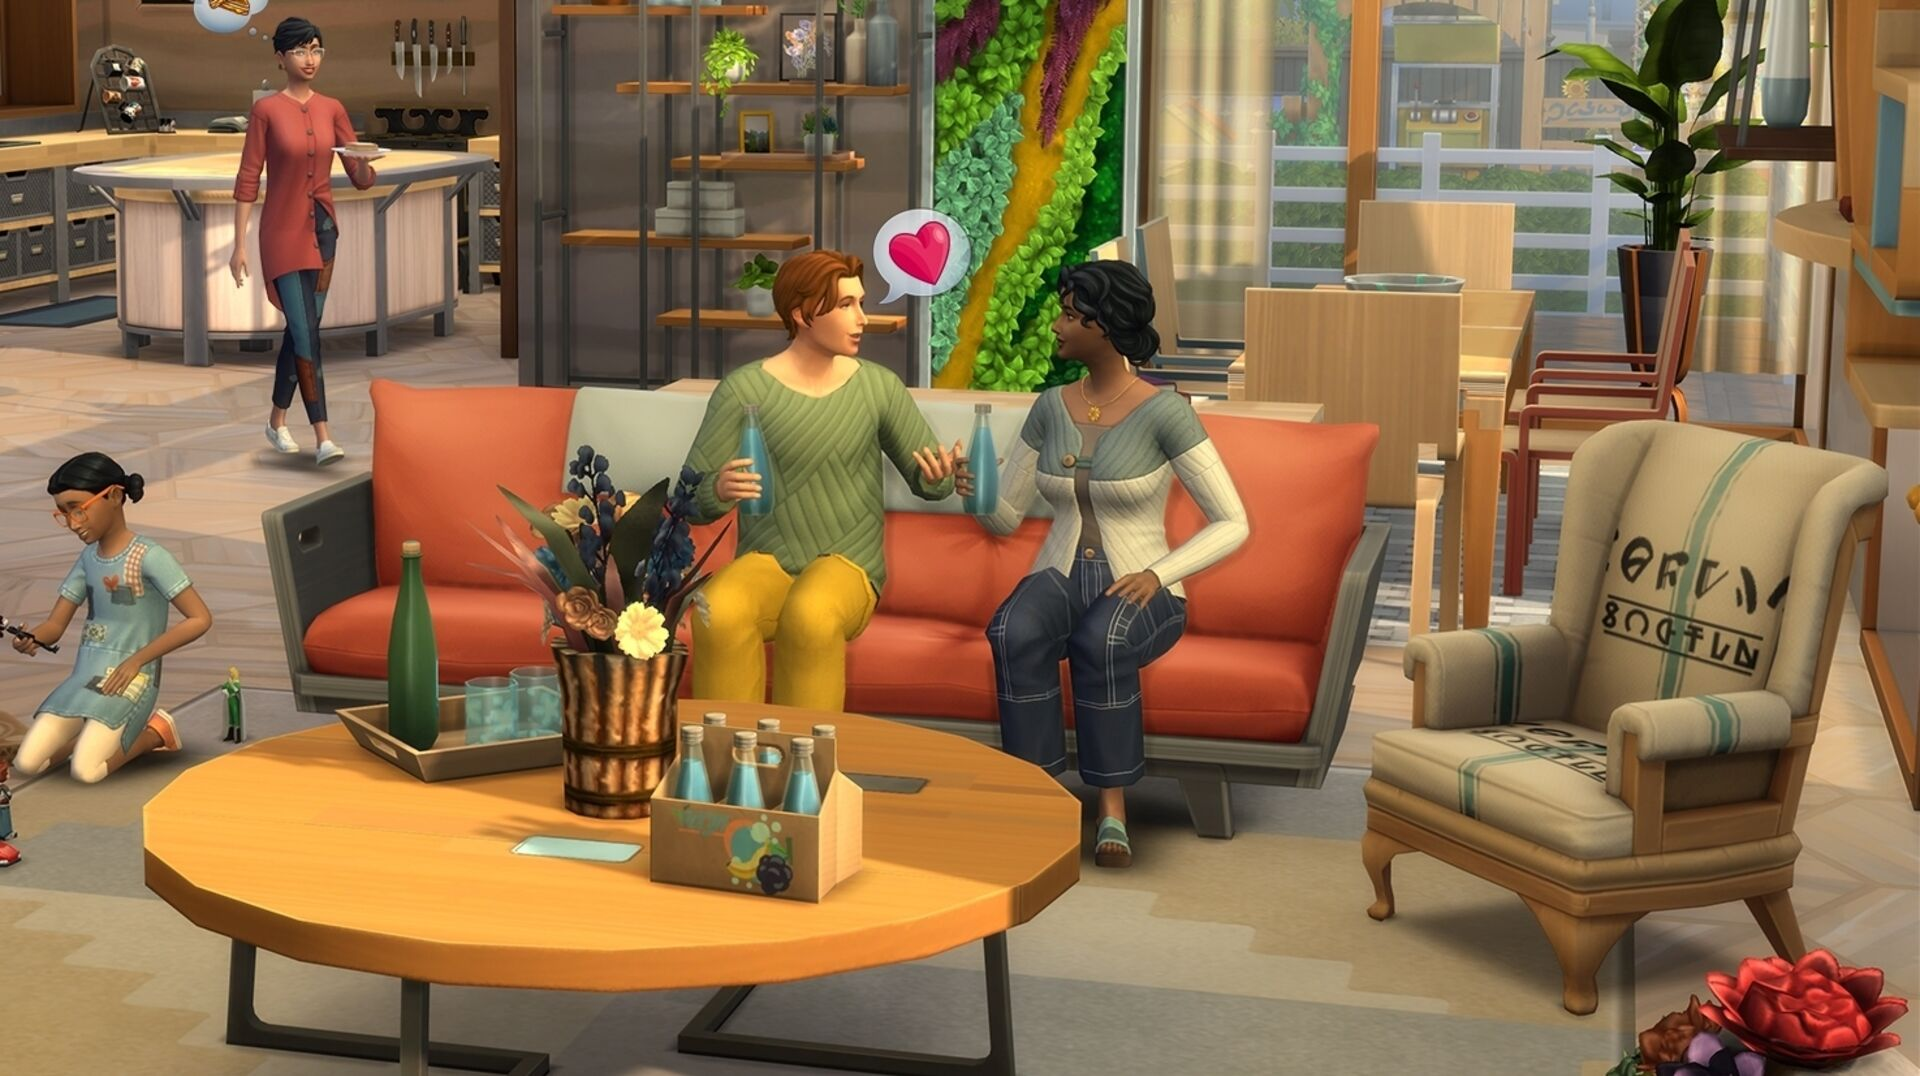 The Sims 4 Is Going Green In New Eco Lifestyle Expansion Eurogamer Net